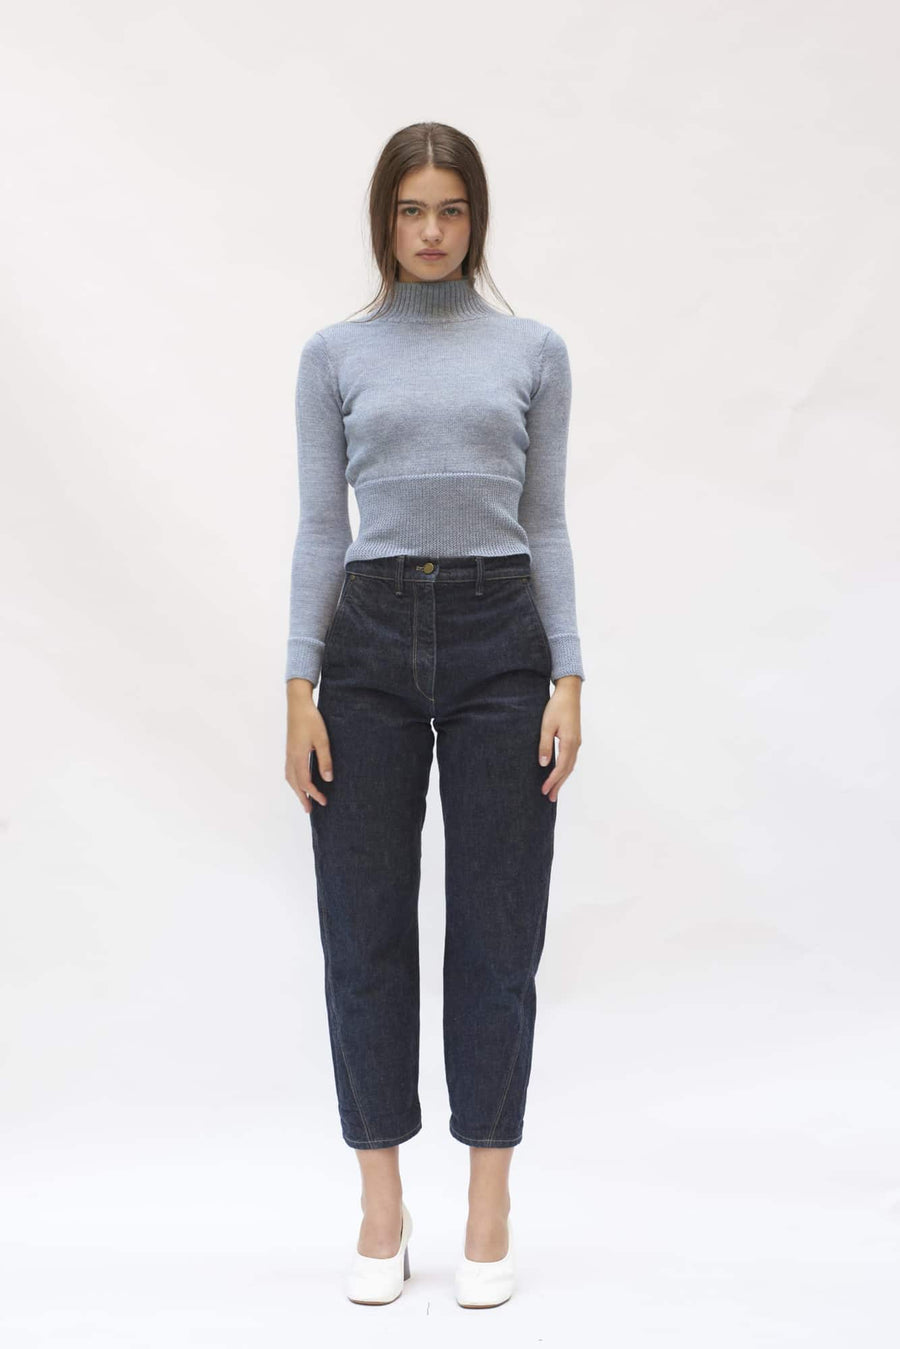 Marlane Sweater-baby blue